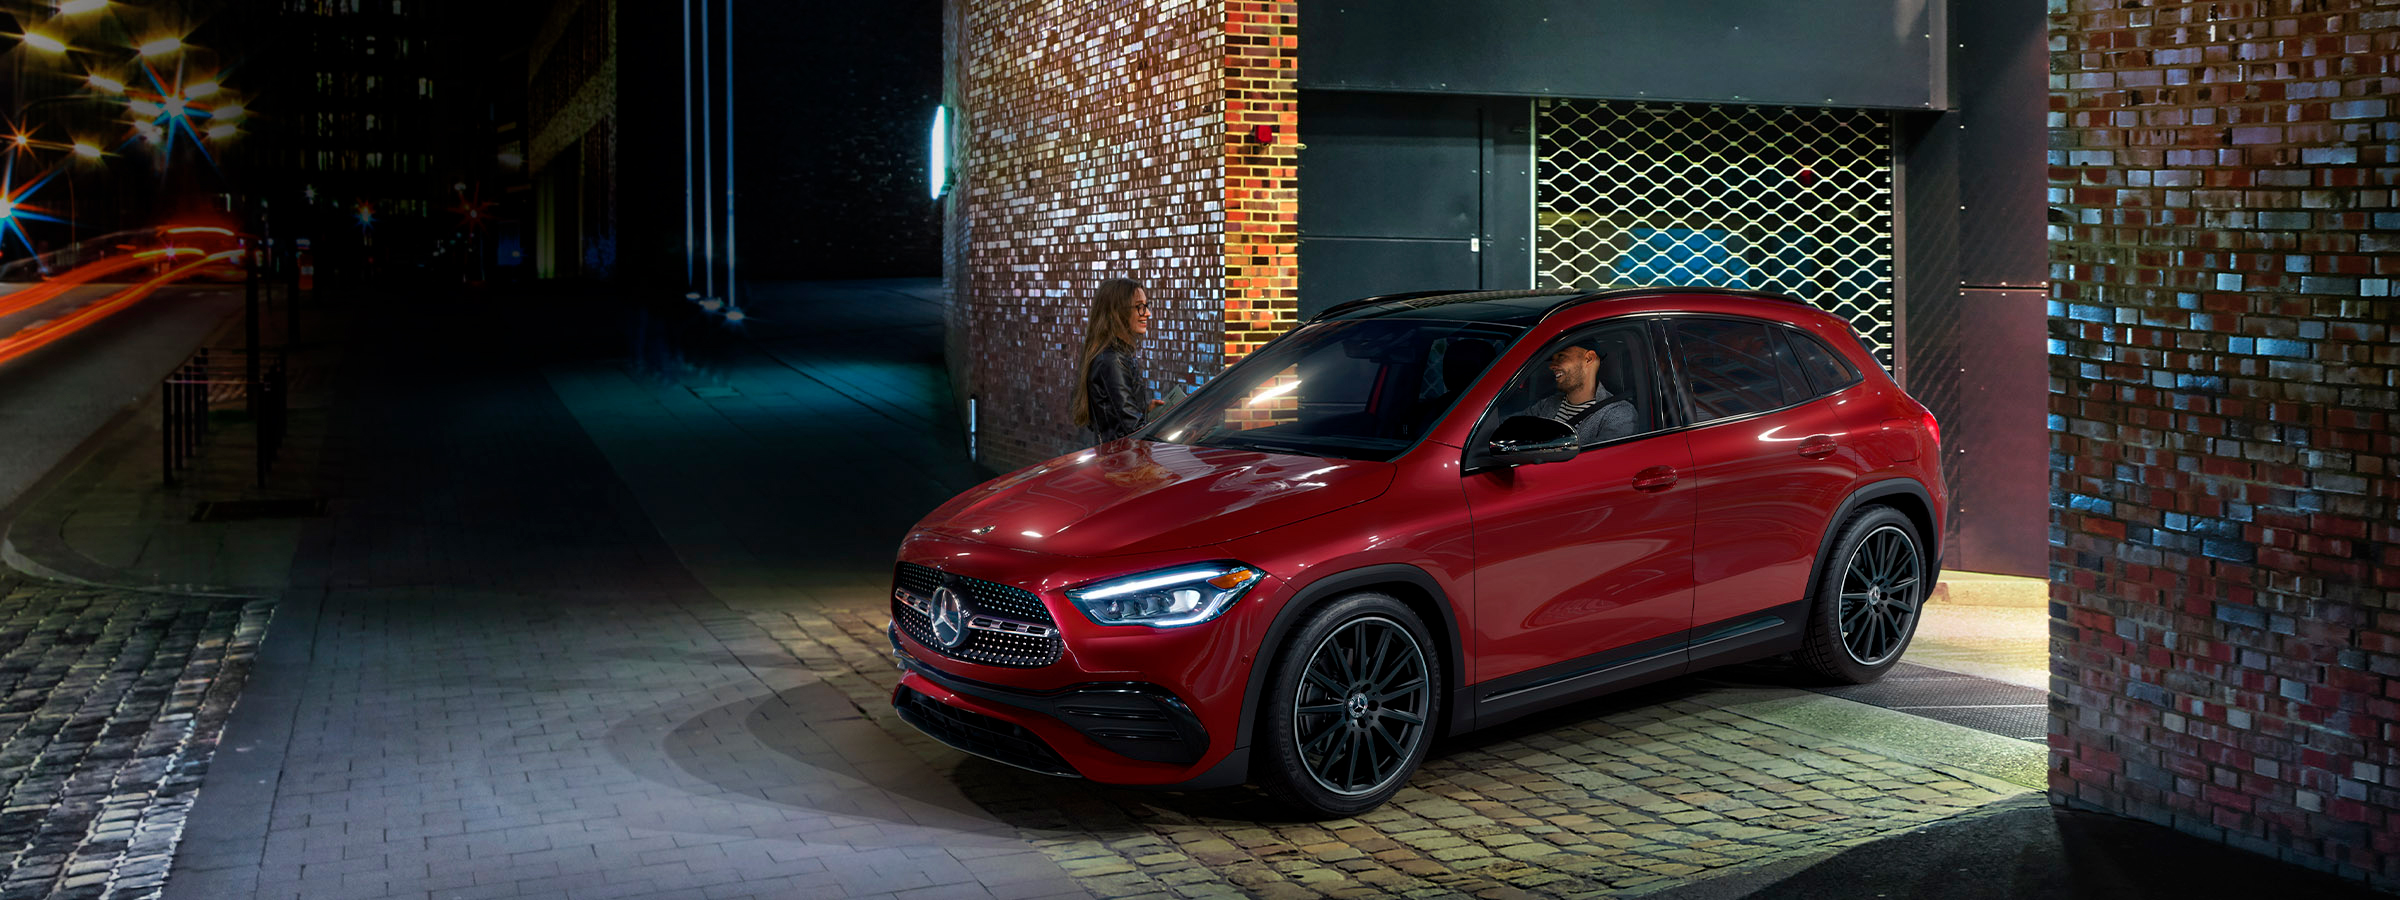 The 2020 GLA SUV